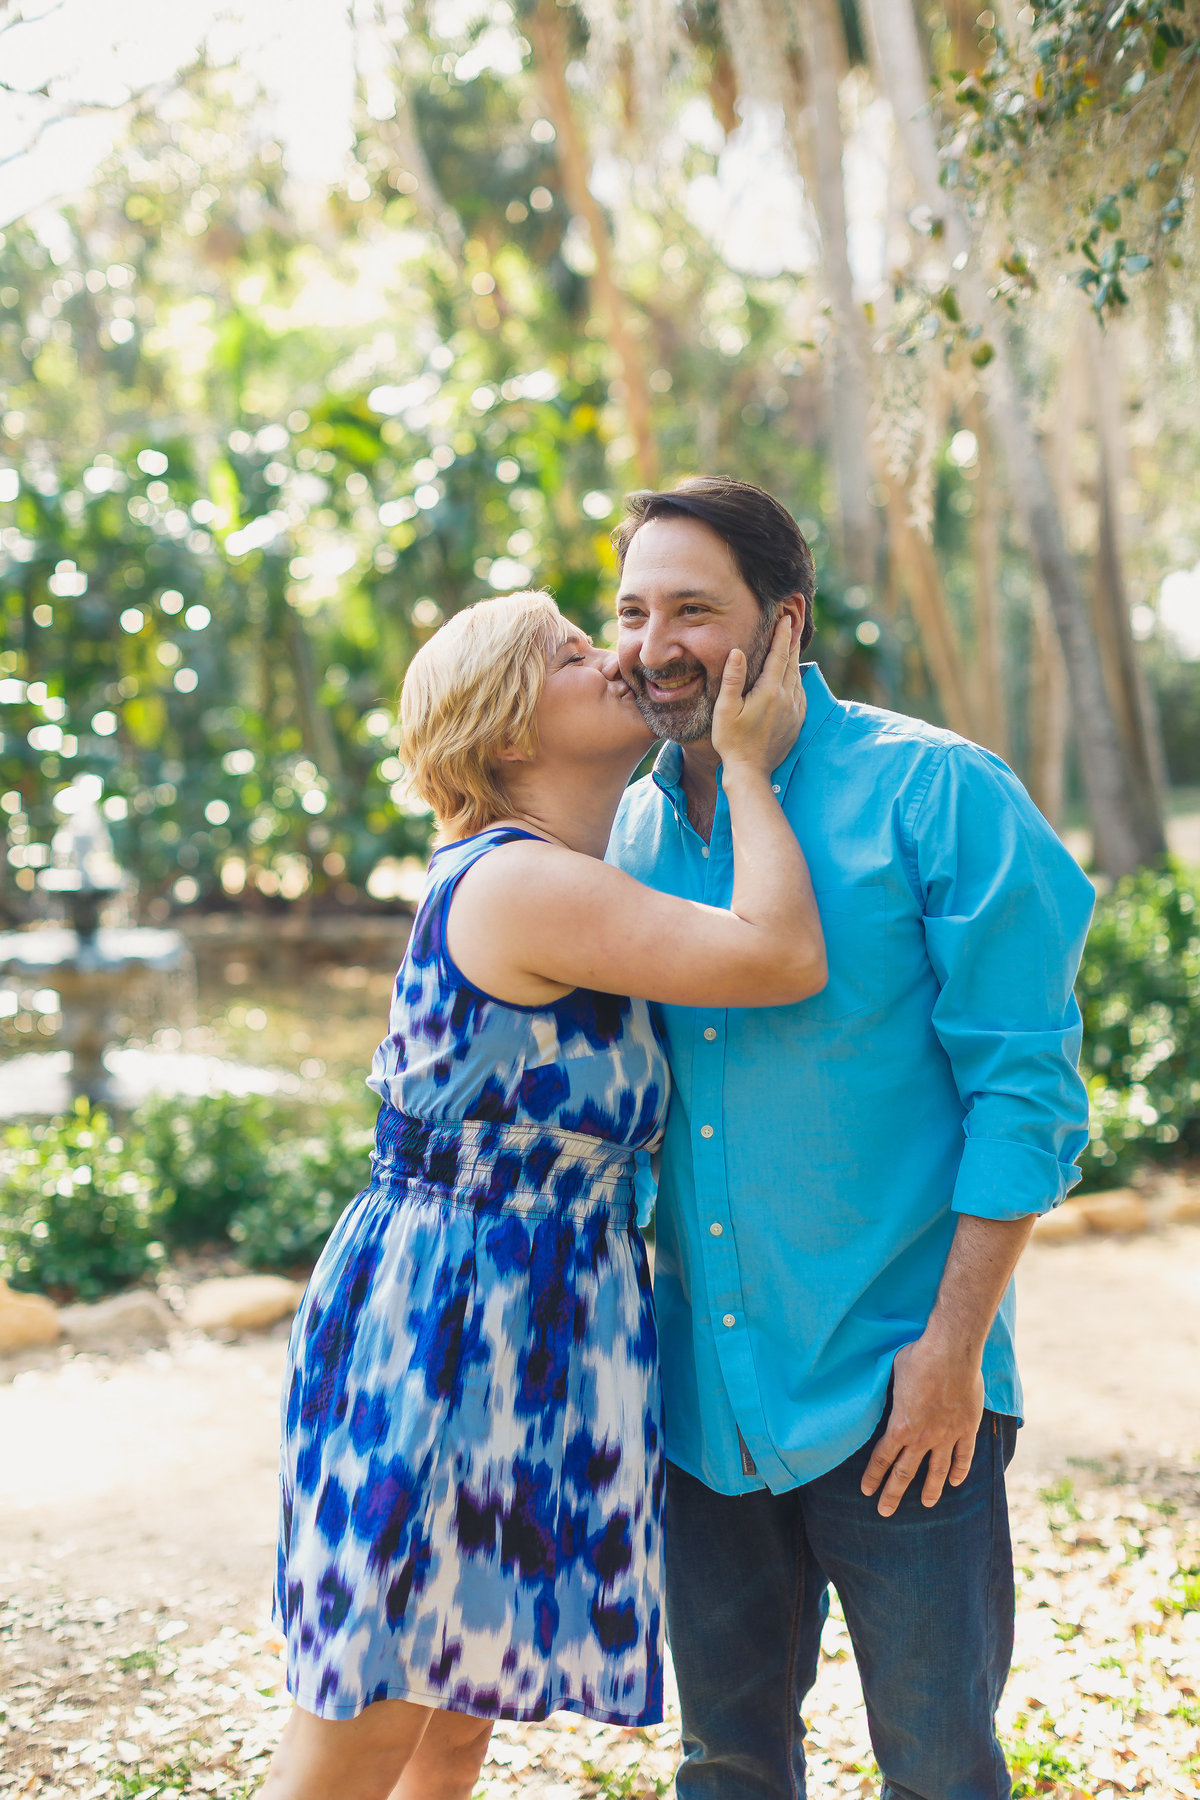 Washington-Oaks-Engagment-Session-Palm-Coast-Jessica-Lea-IMG-061